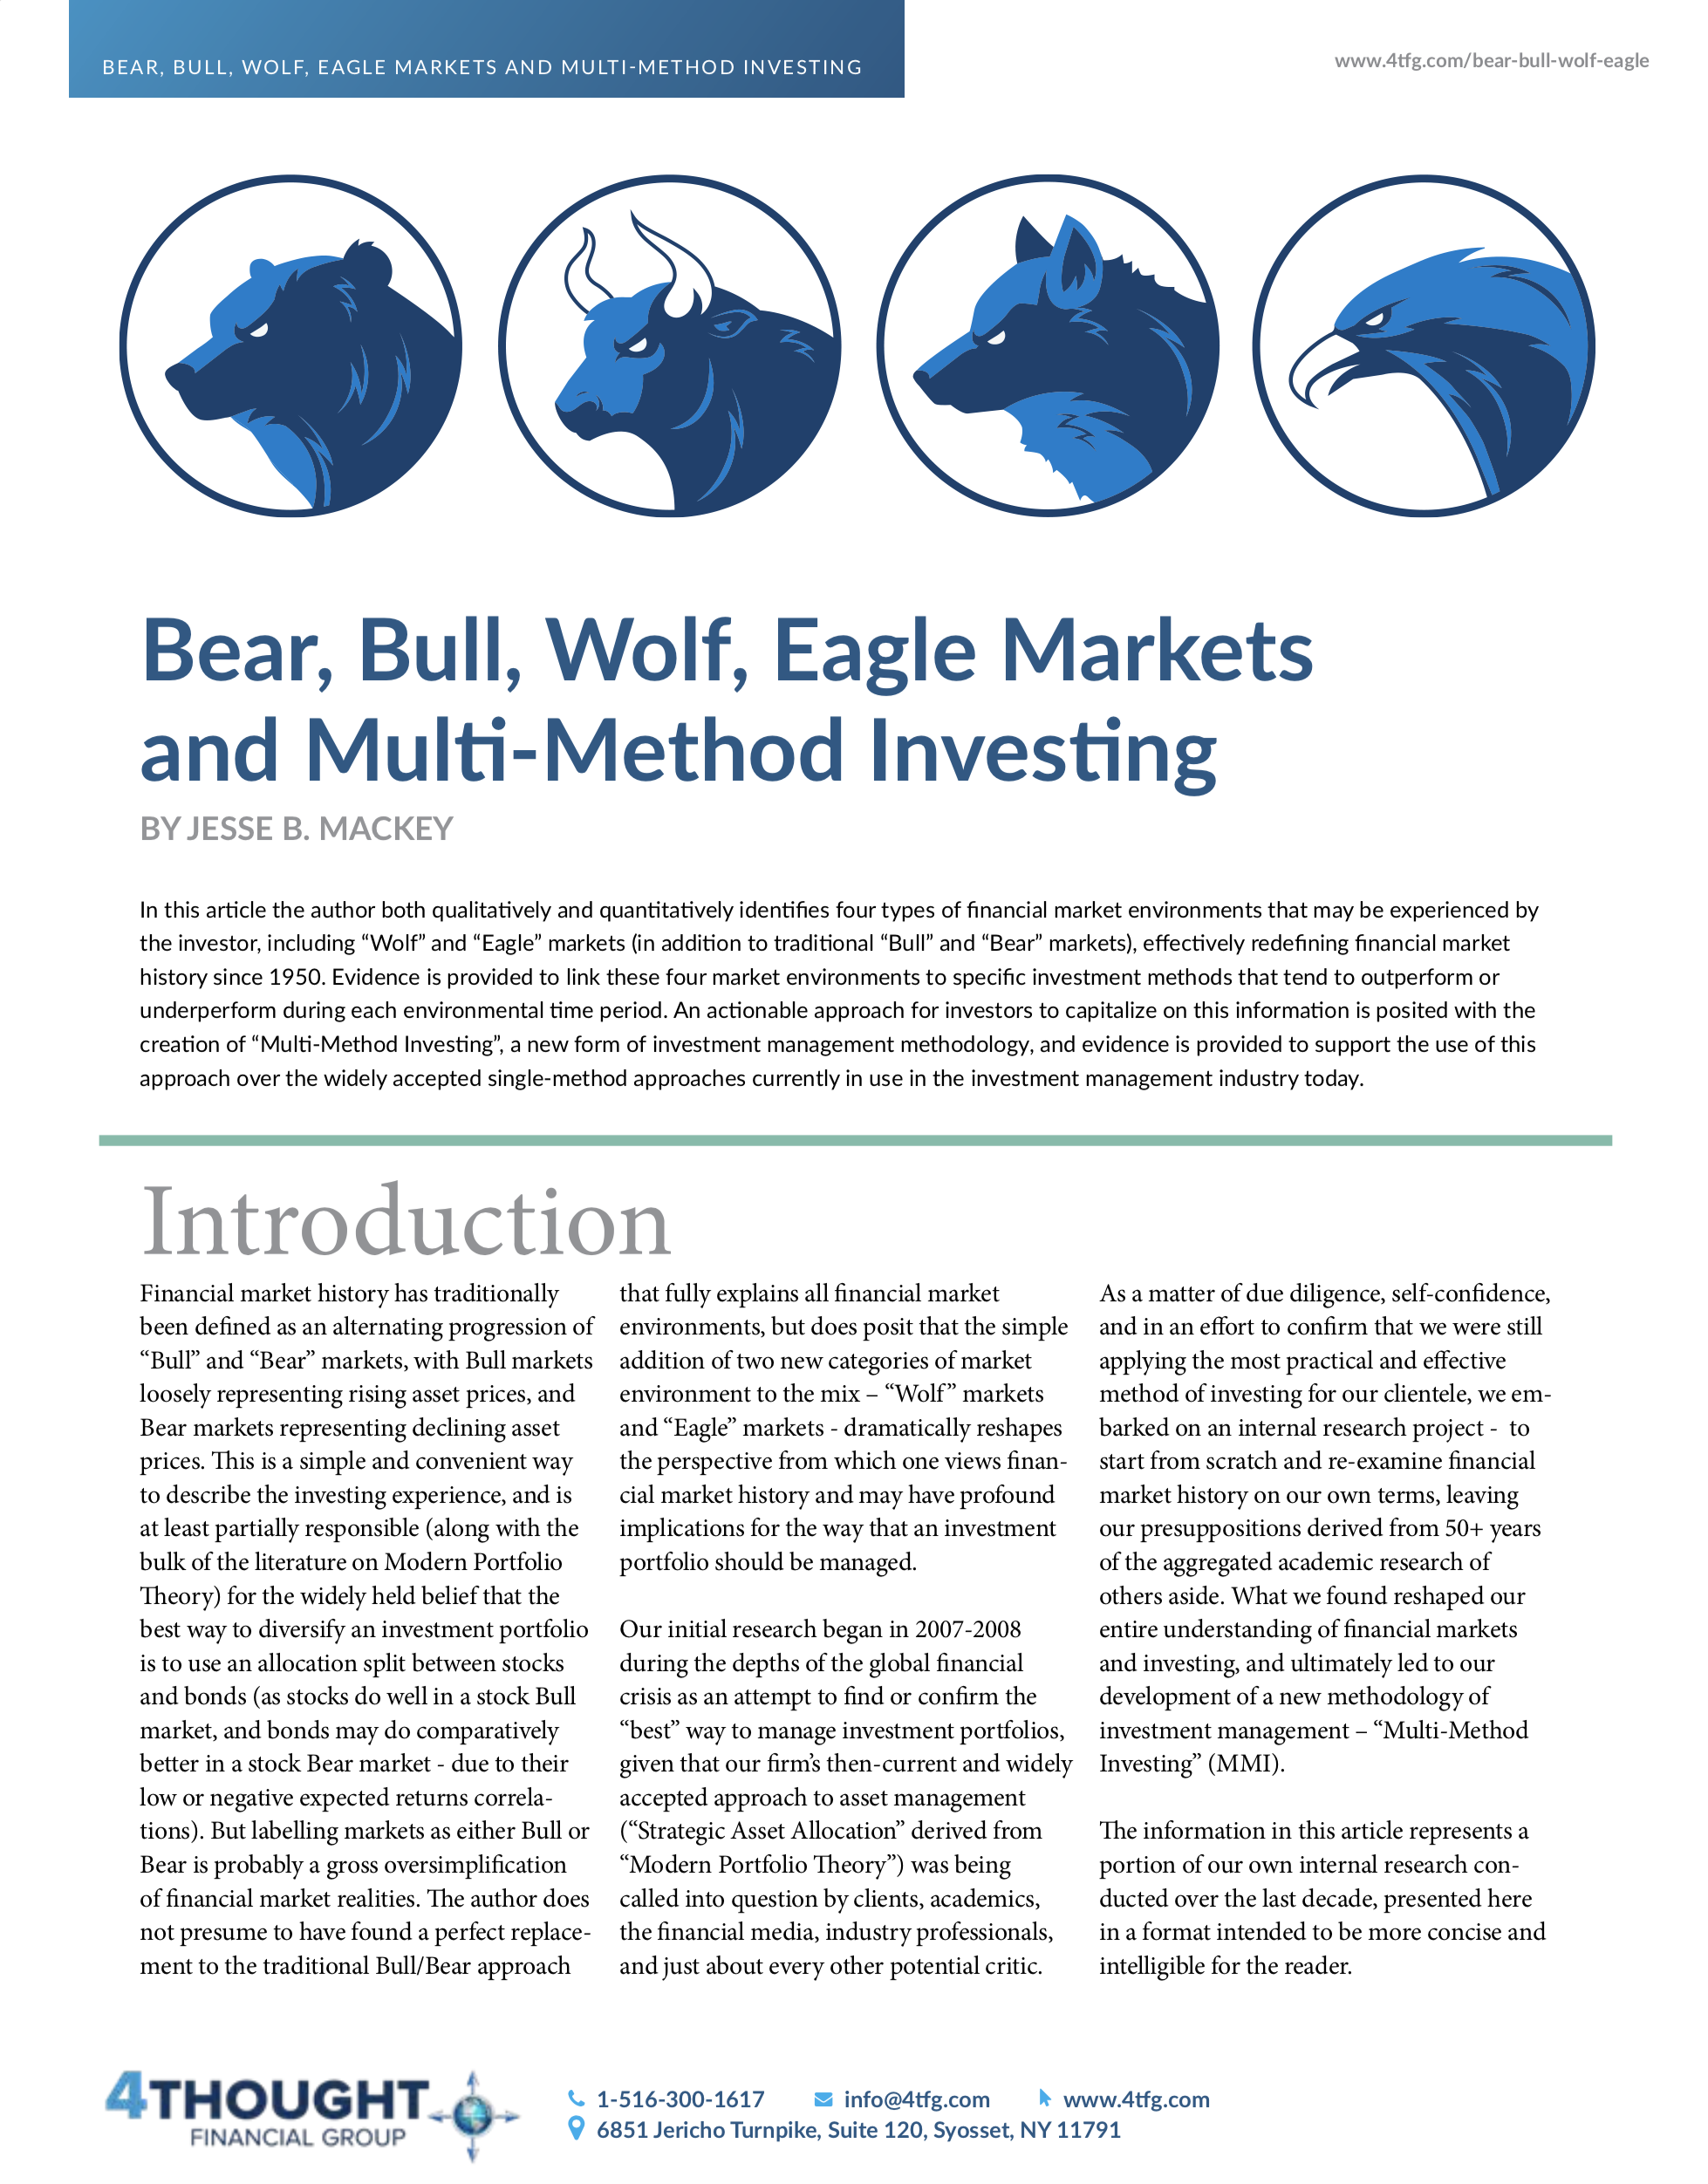 Bear Bull Wolf Eagle Markets and Multi-Method Investing.png